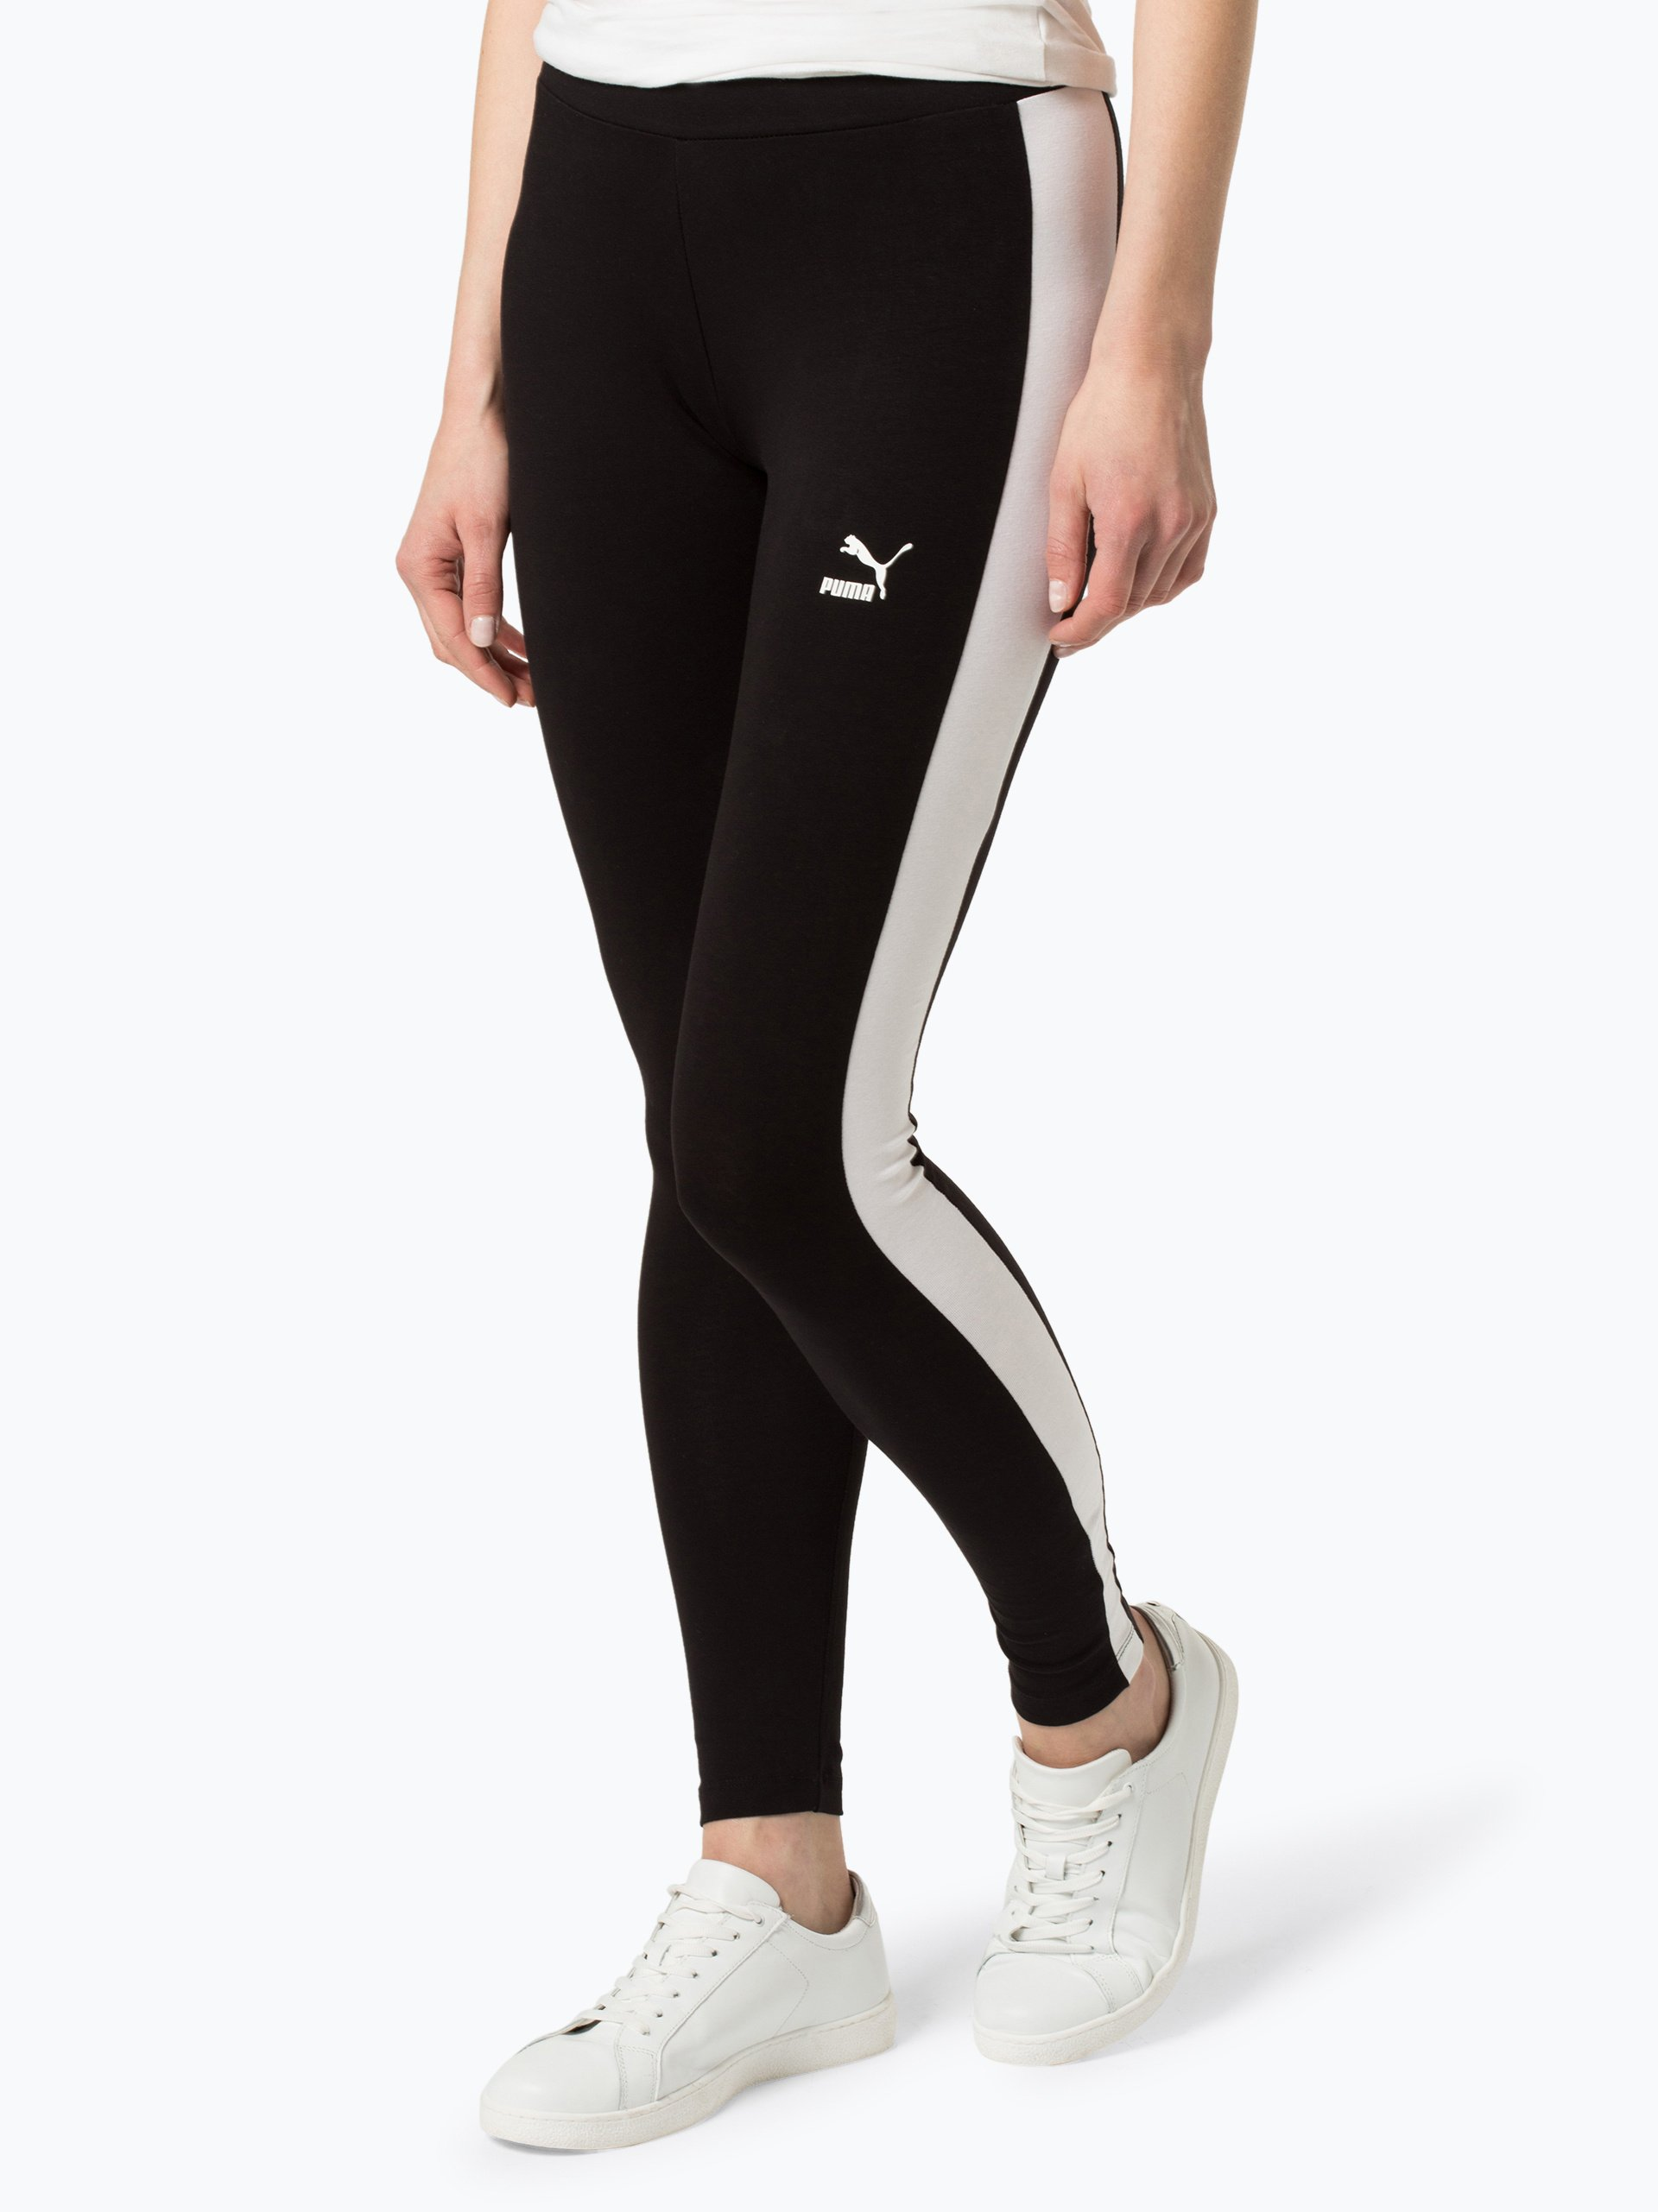 Puma Damen Sportswear Leggings